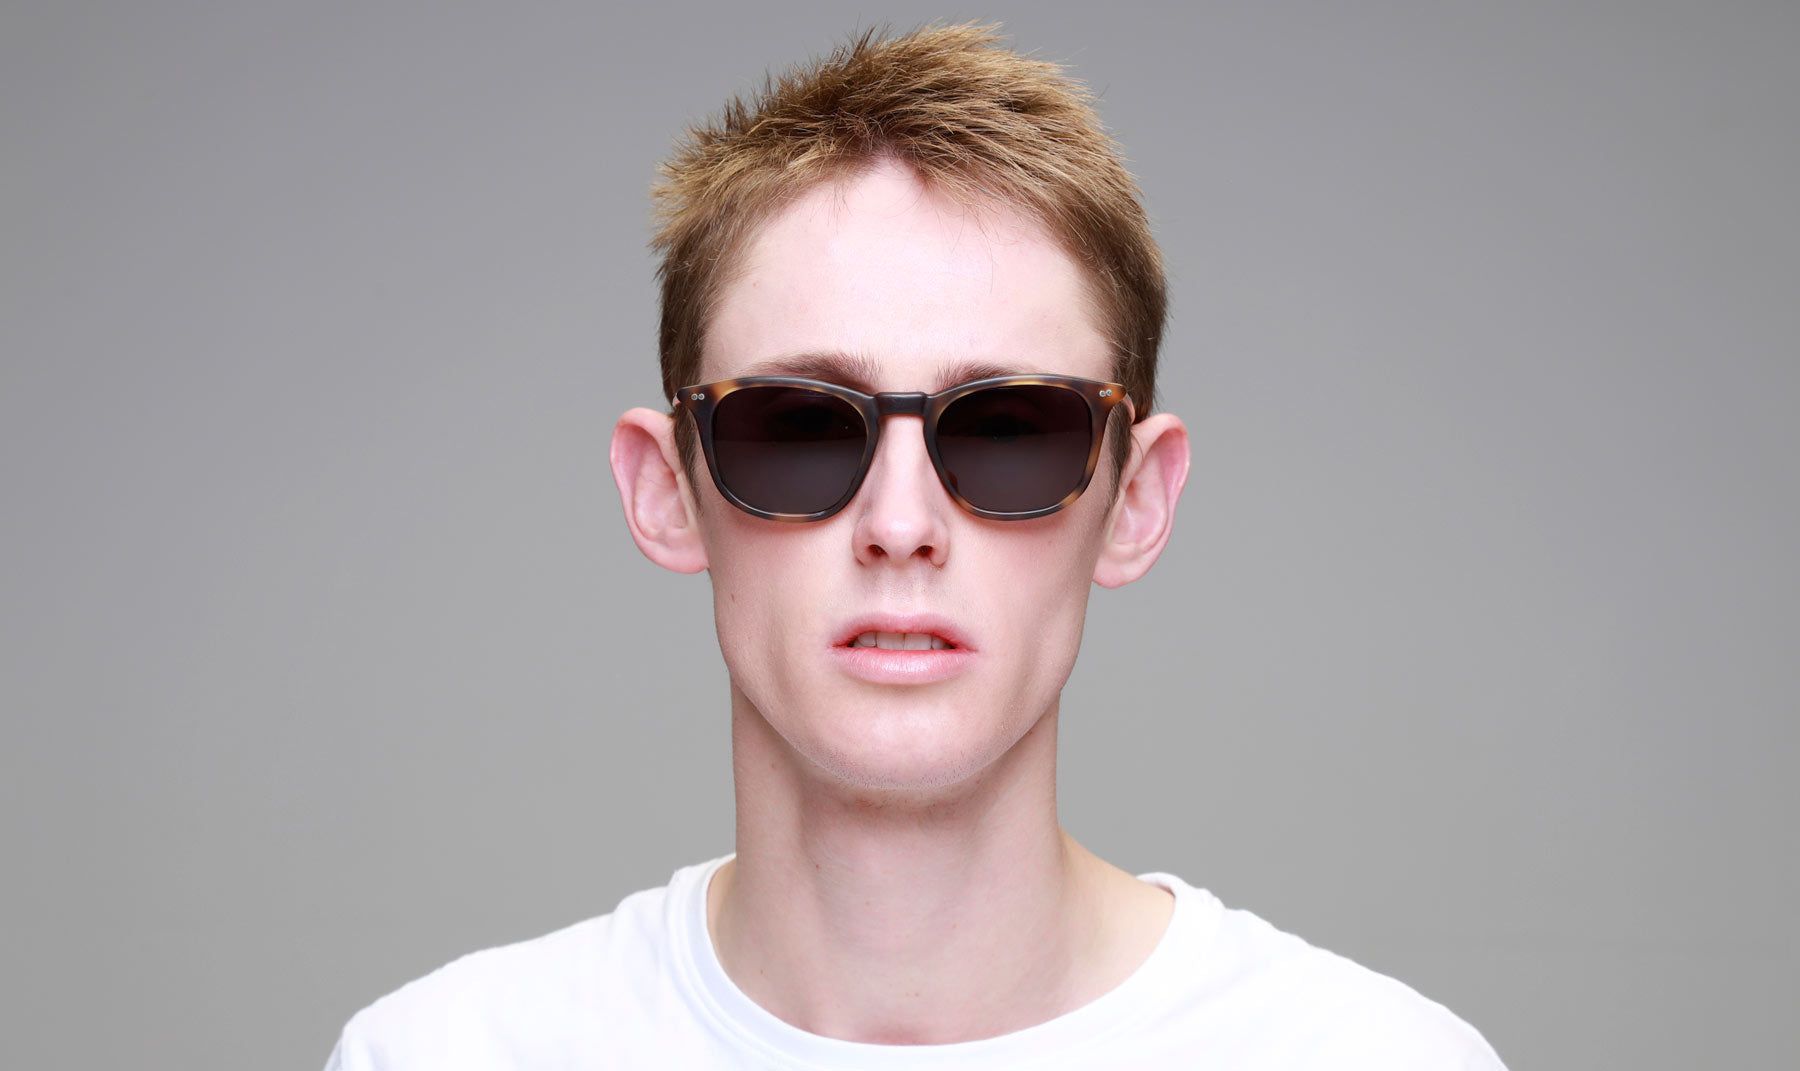 High Quality UK Made Sunglasses for men